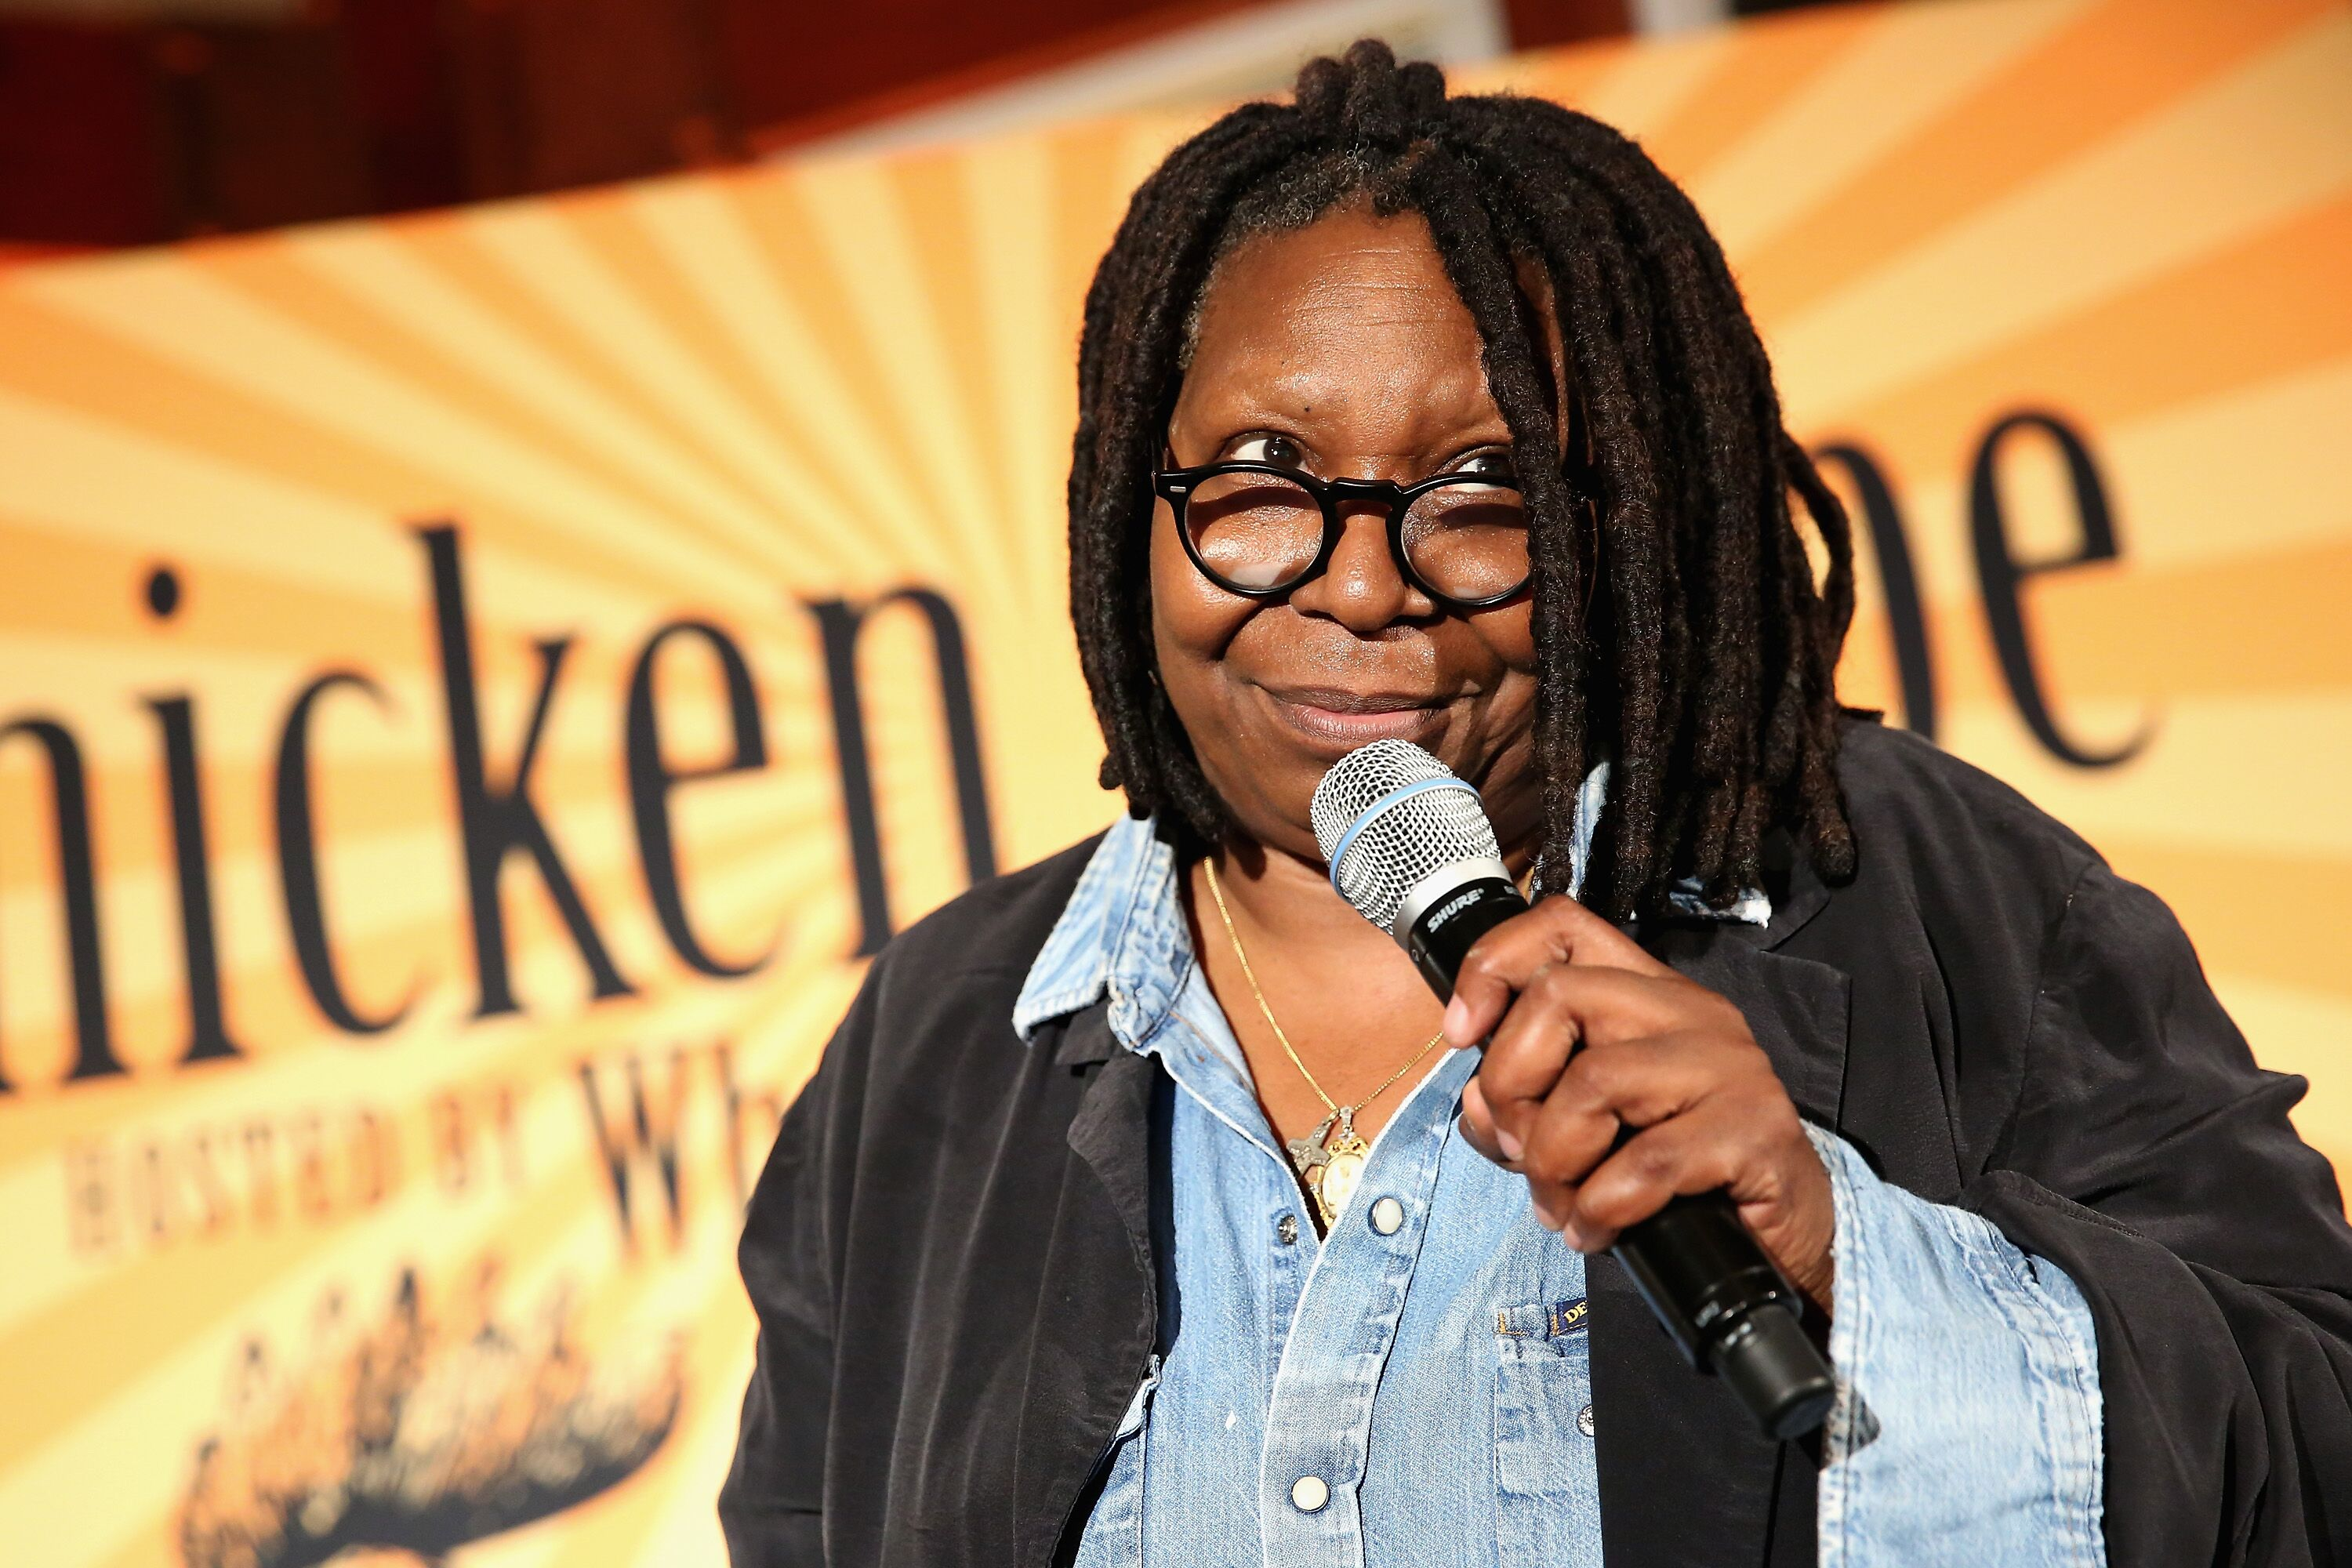 Whoopi Goldberg, speaks at Chicken Coupe during Food Network & Cooking Channel New York City Wine & Food Festival at The Loeb Boathouse on October 15, 2015. | Source: Getty Images